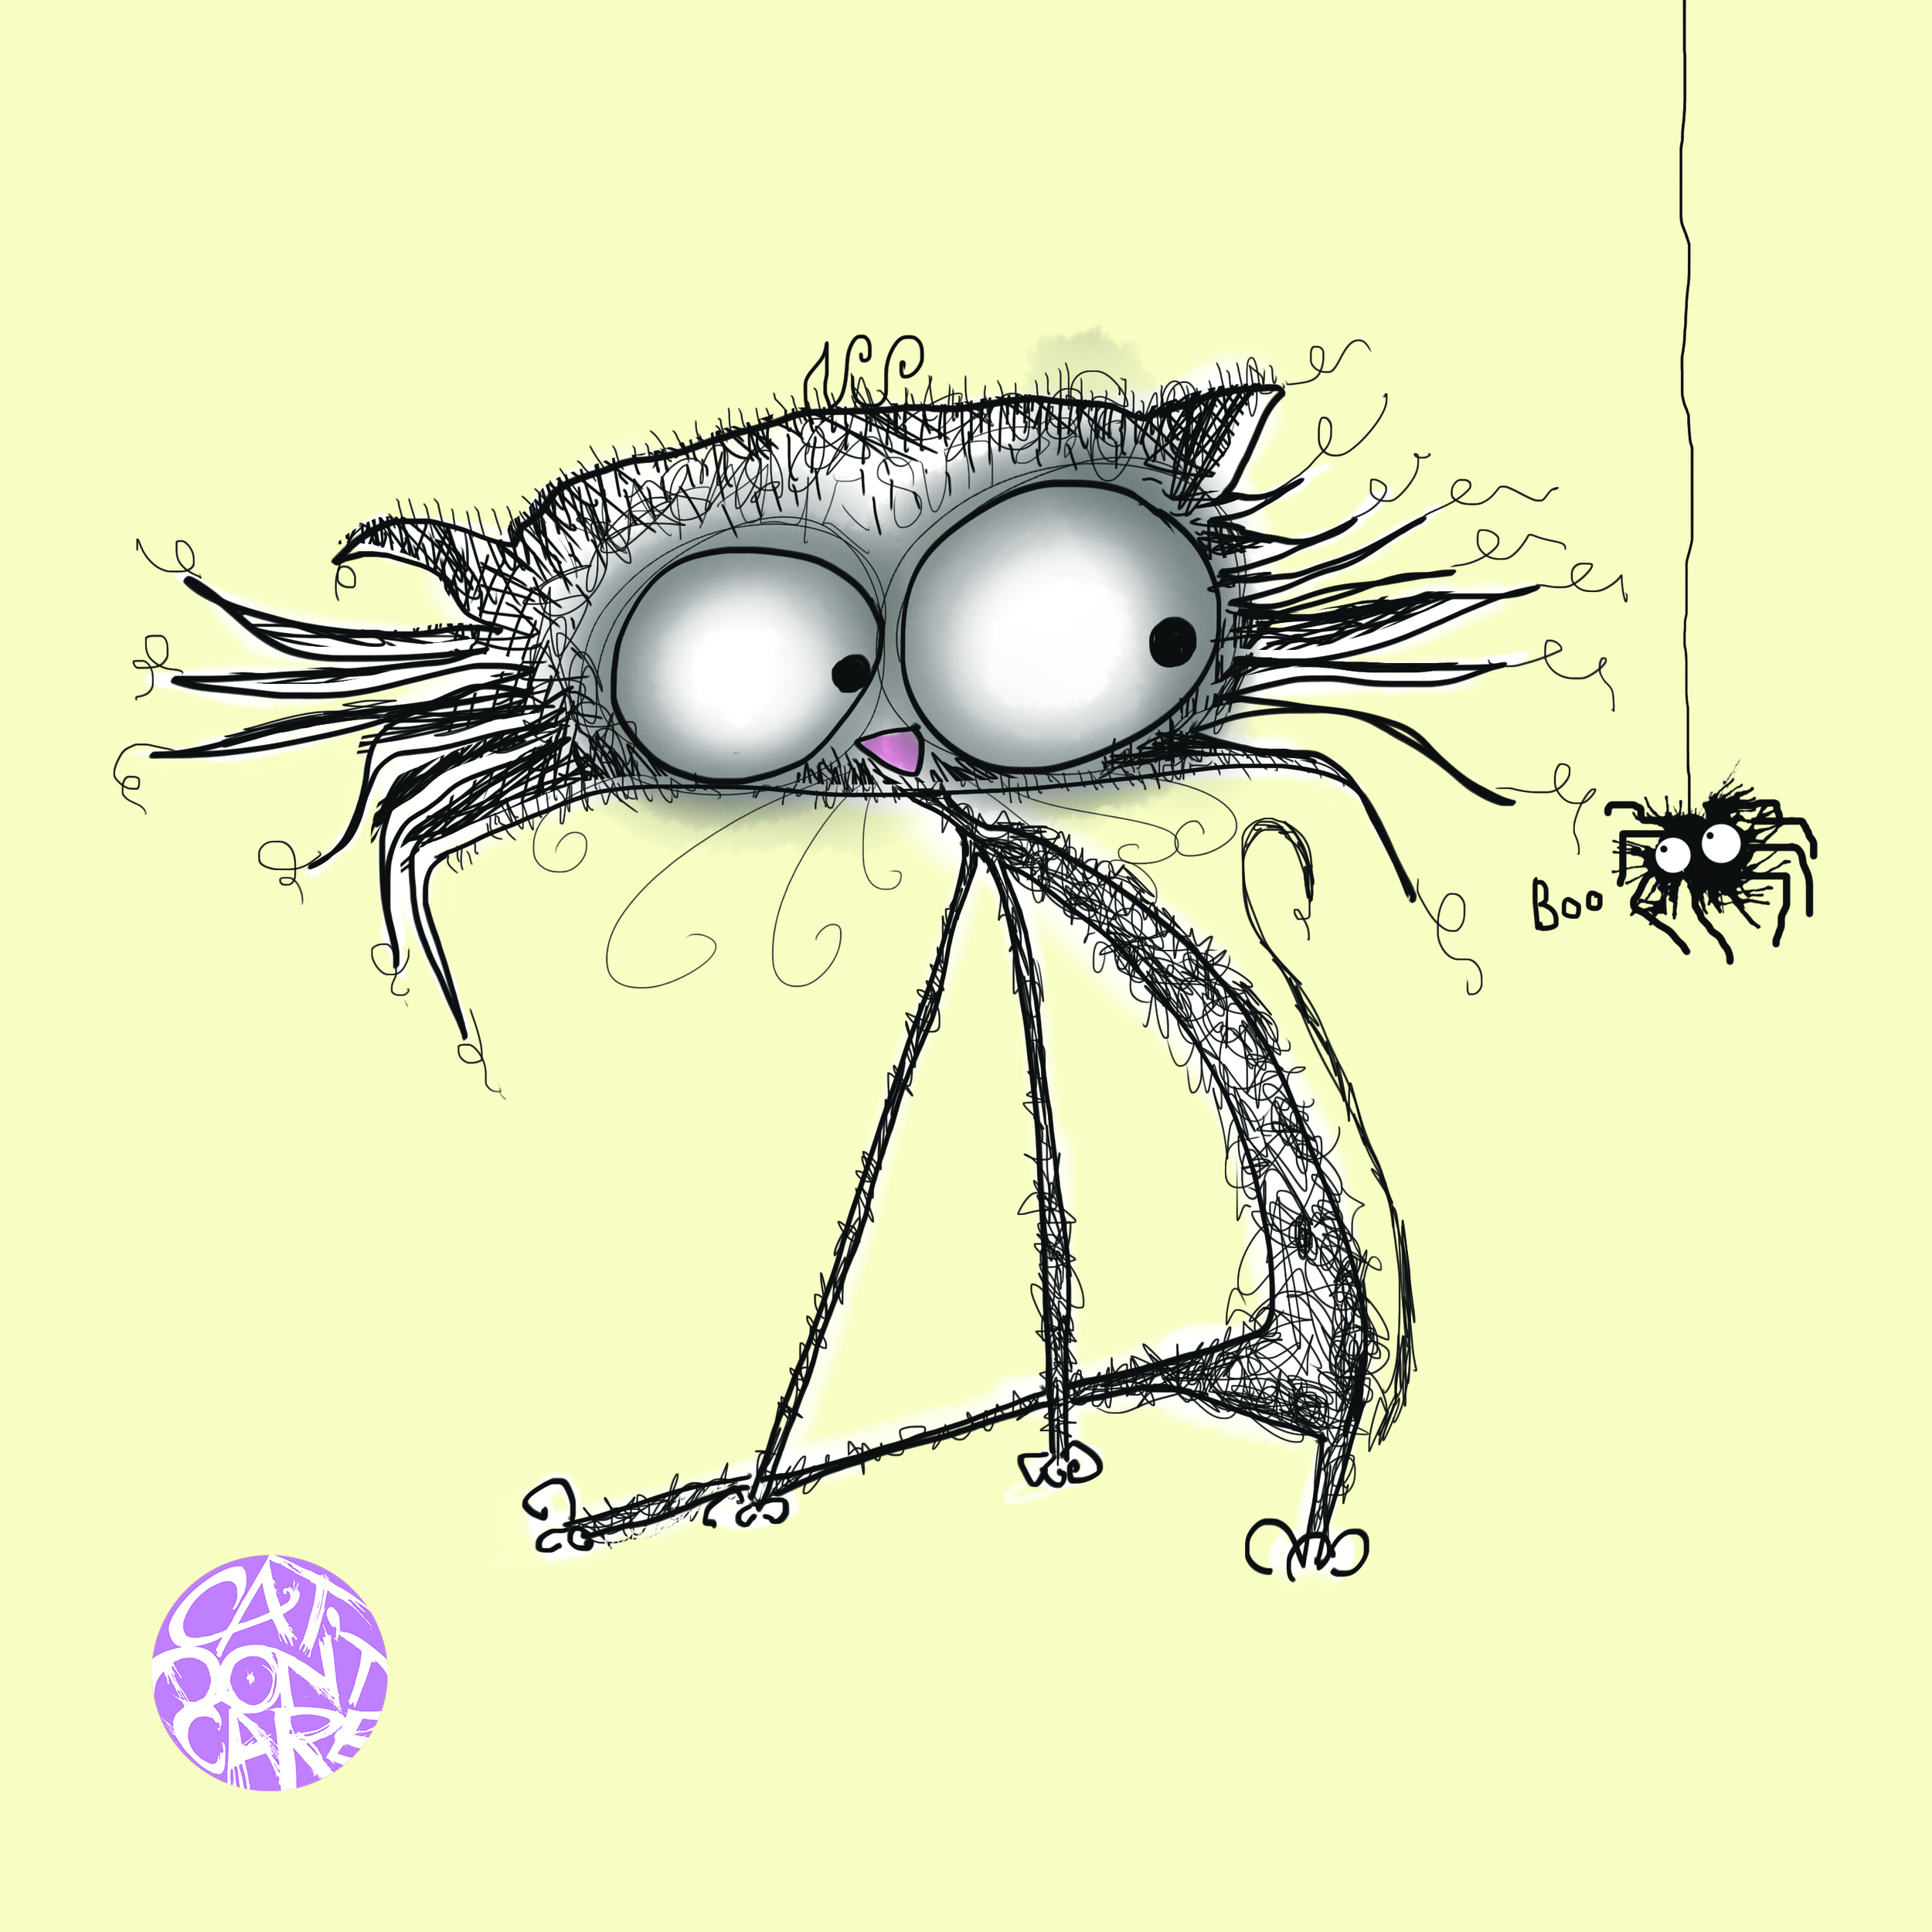 cat and boo spider funny cat dont care natalie palmer sutton illustration cat artist gifts for cat lovers